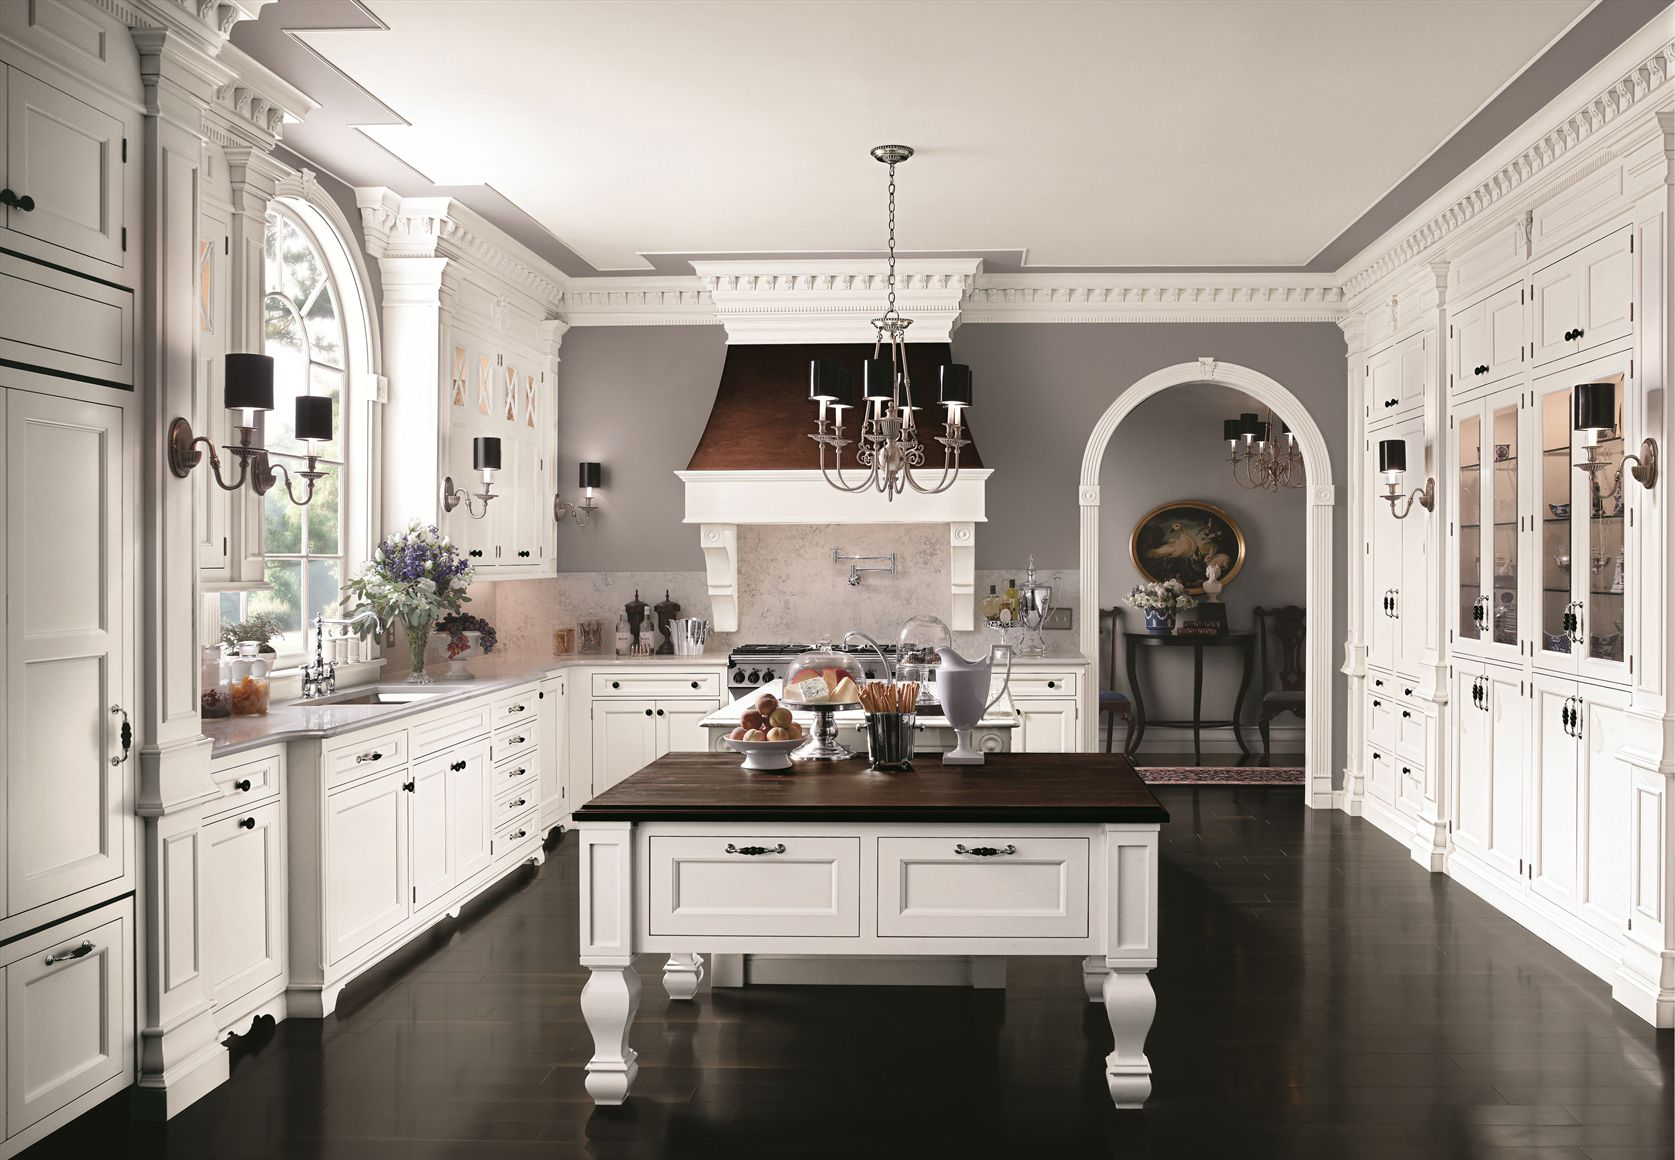 Signature Cabinets Of San Antonio Tx Kitchen Inspirations Updated Kitchen Kitchen Design